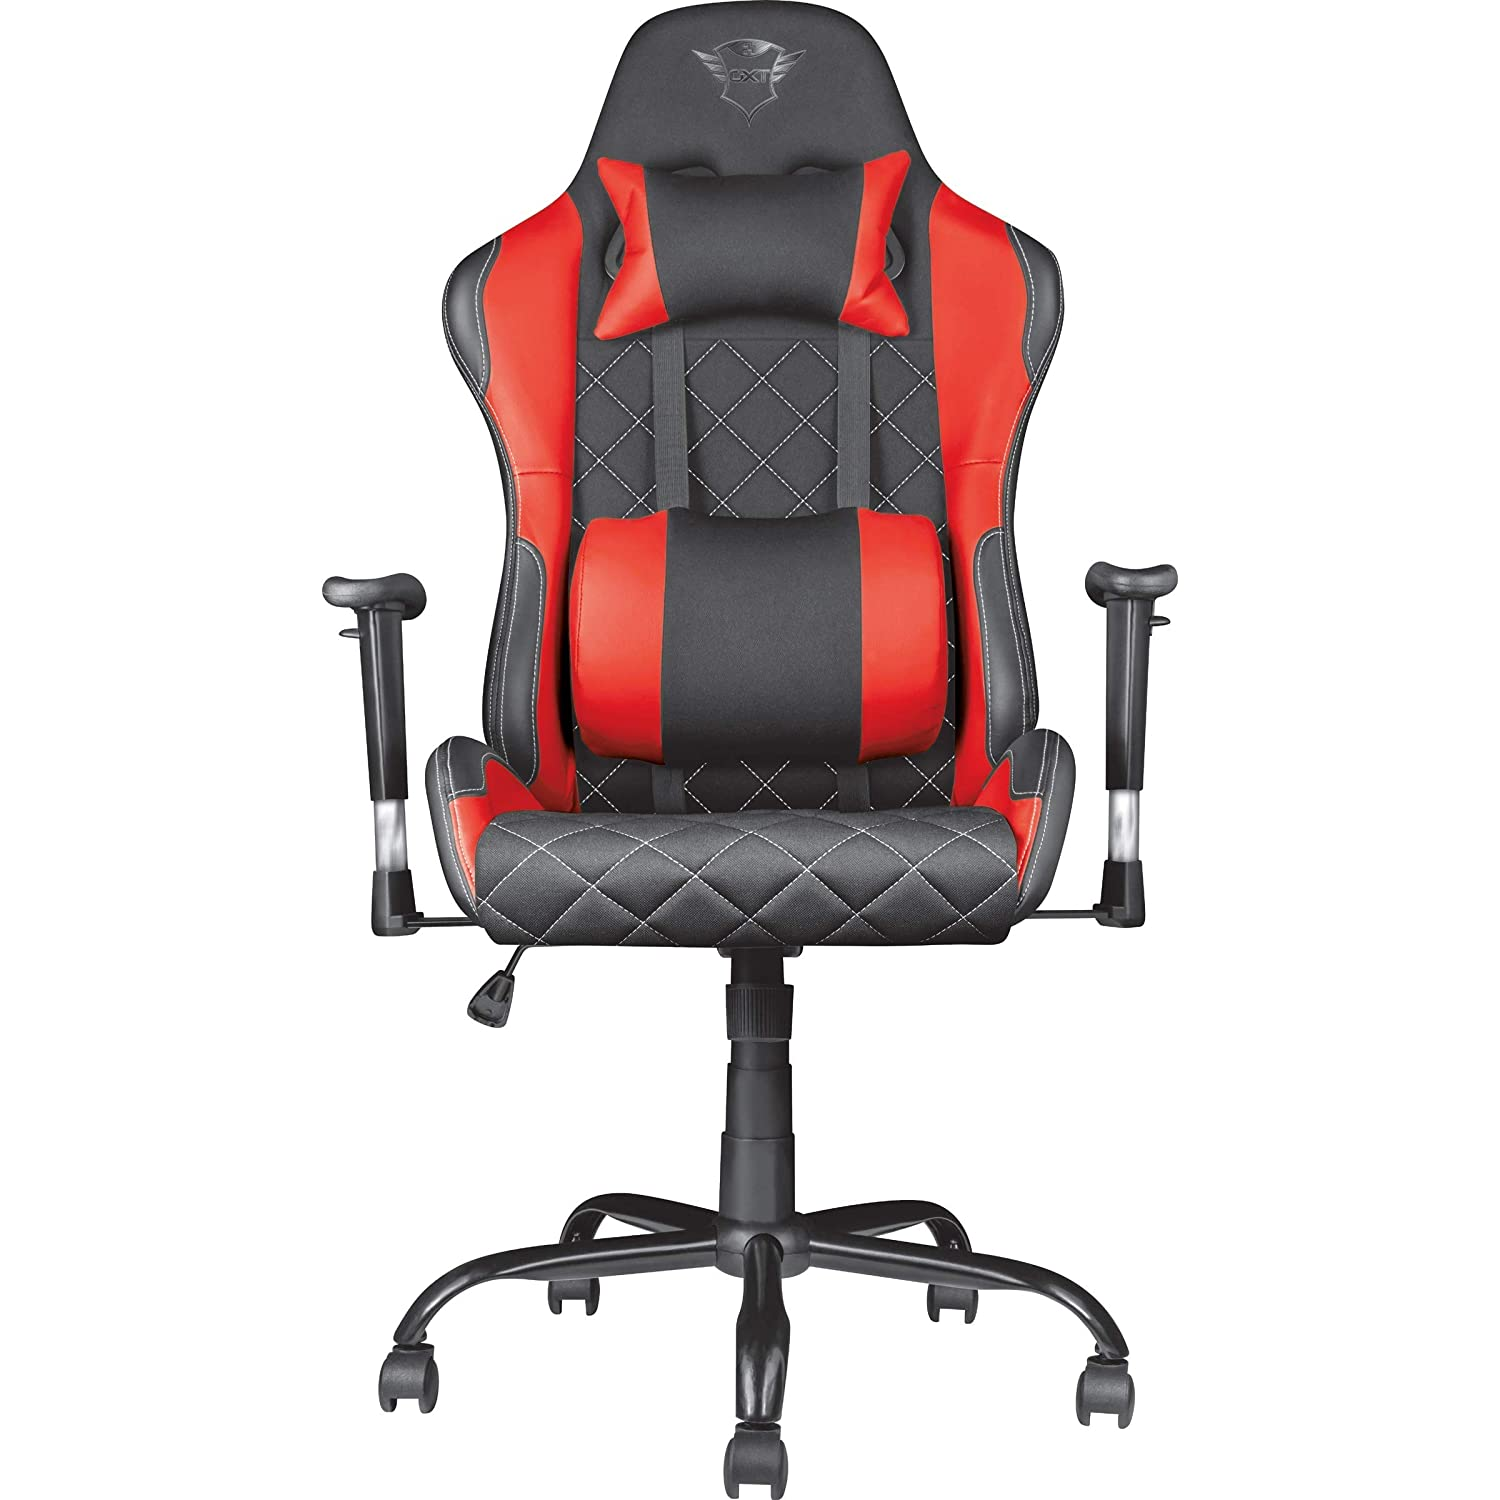 Red//Black Trust International B.V 22256 Trust GXT 705 Ryon Gaming Chair Full Ergonomic Design